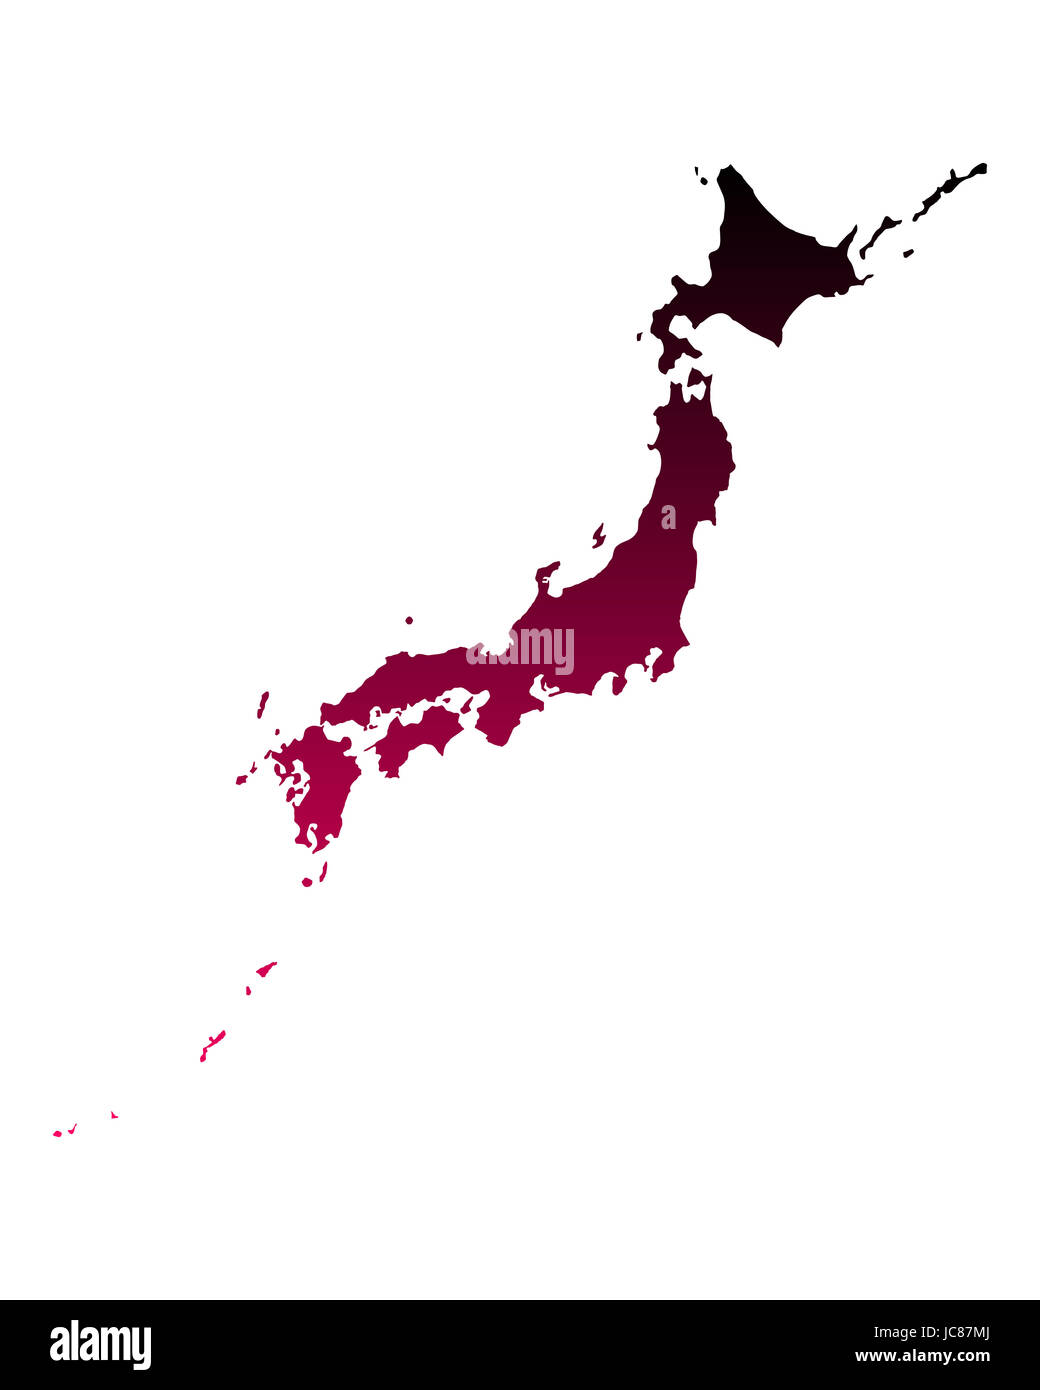 Karte von Japan - Stock Image